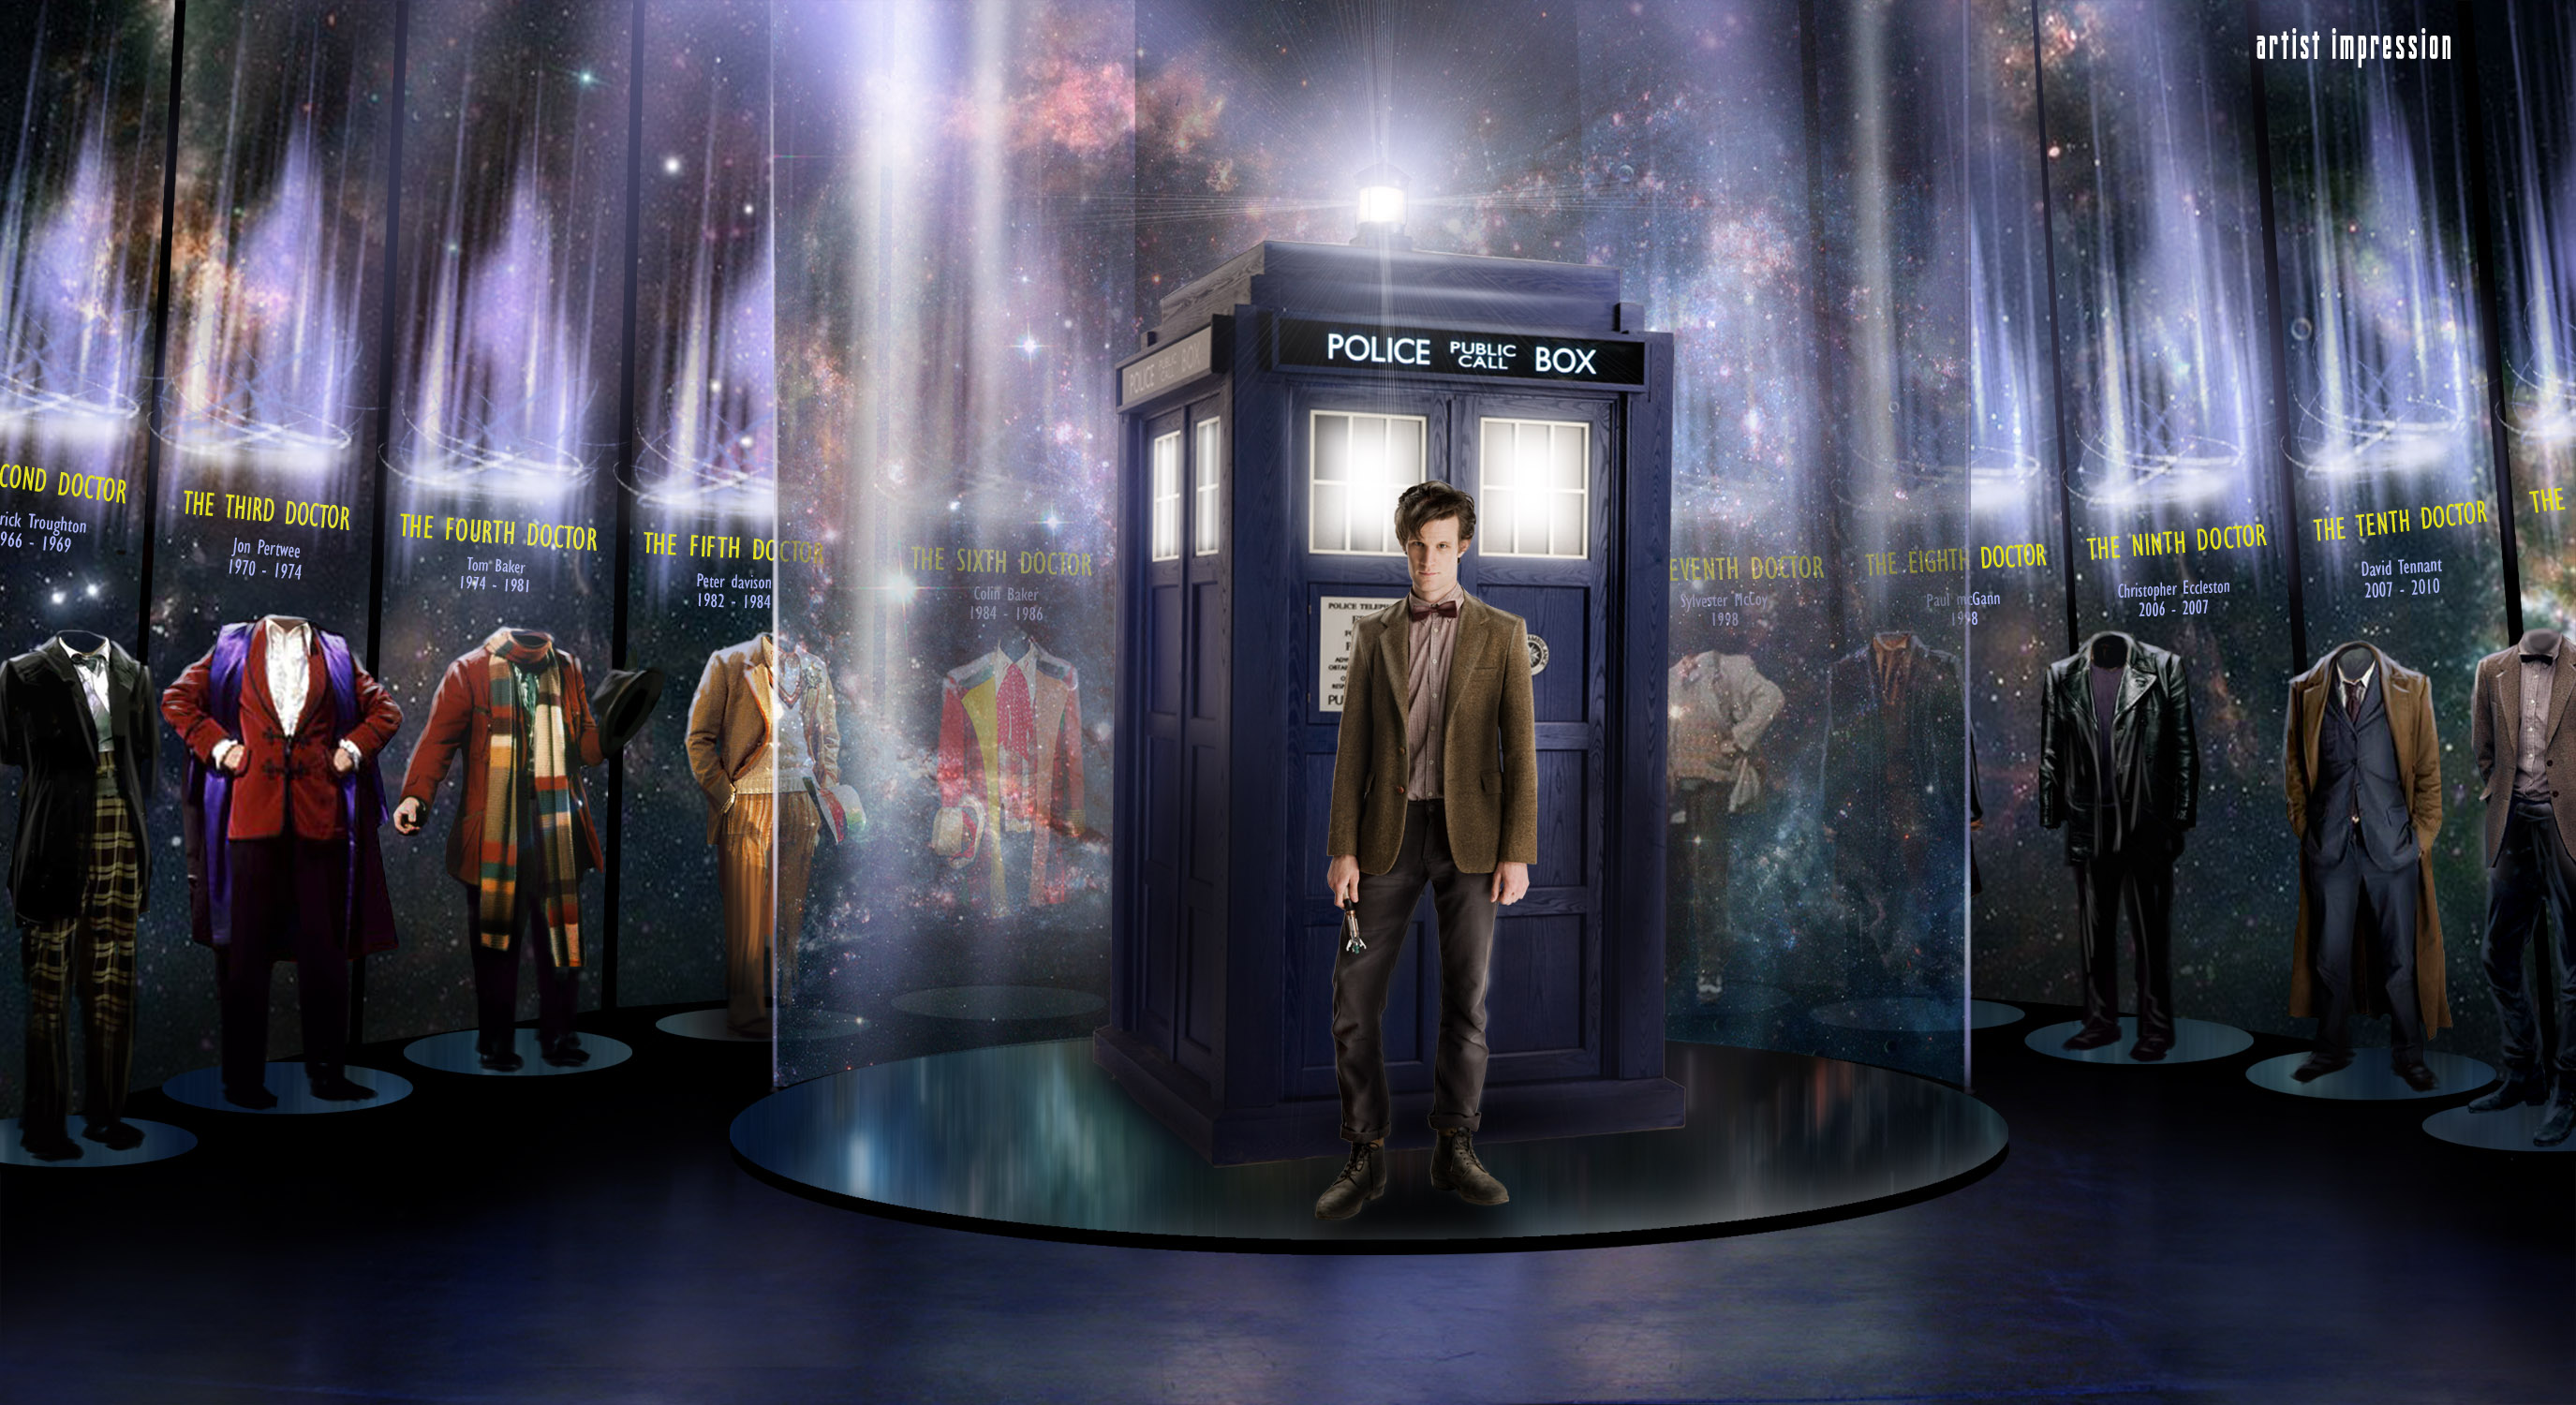 Doctor Who Desktop Wallpaper Hd: Doctor Who Wallpapers High Resolution And Quality Download